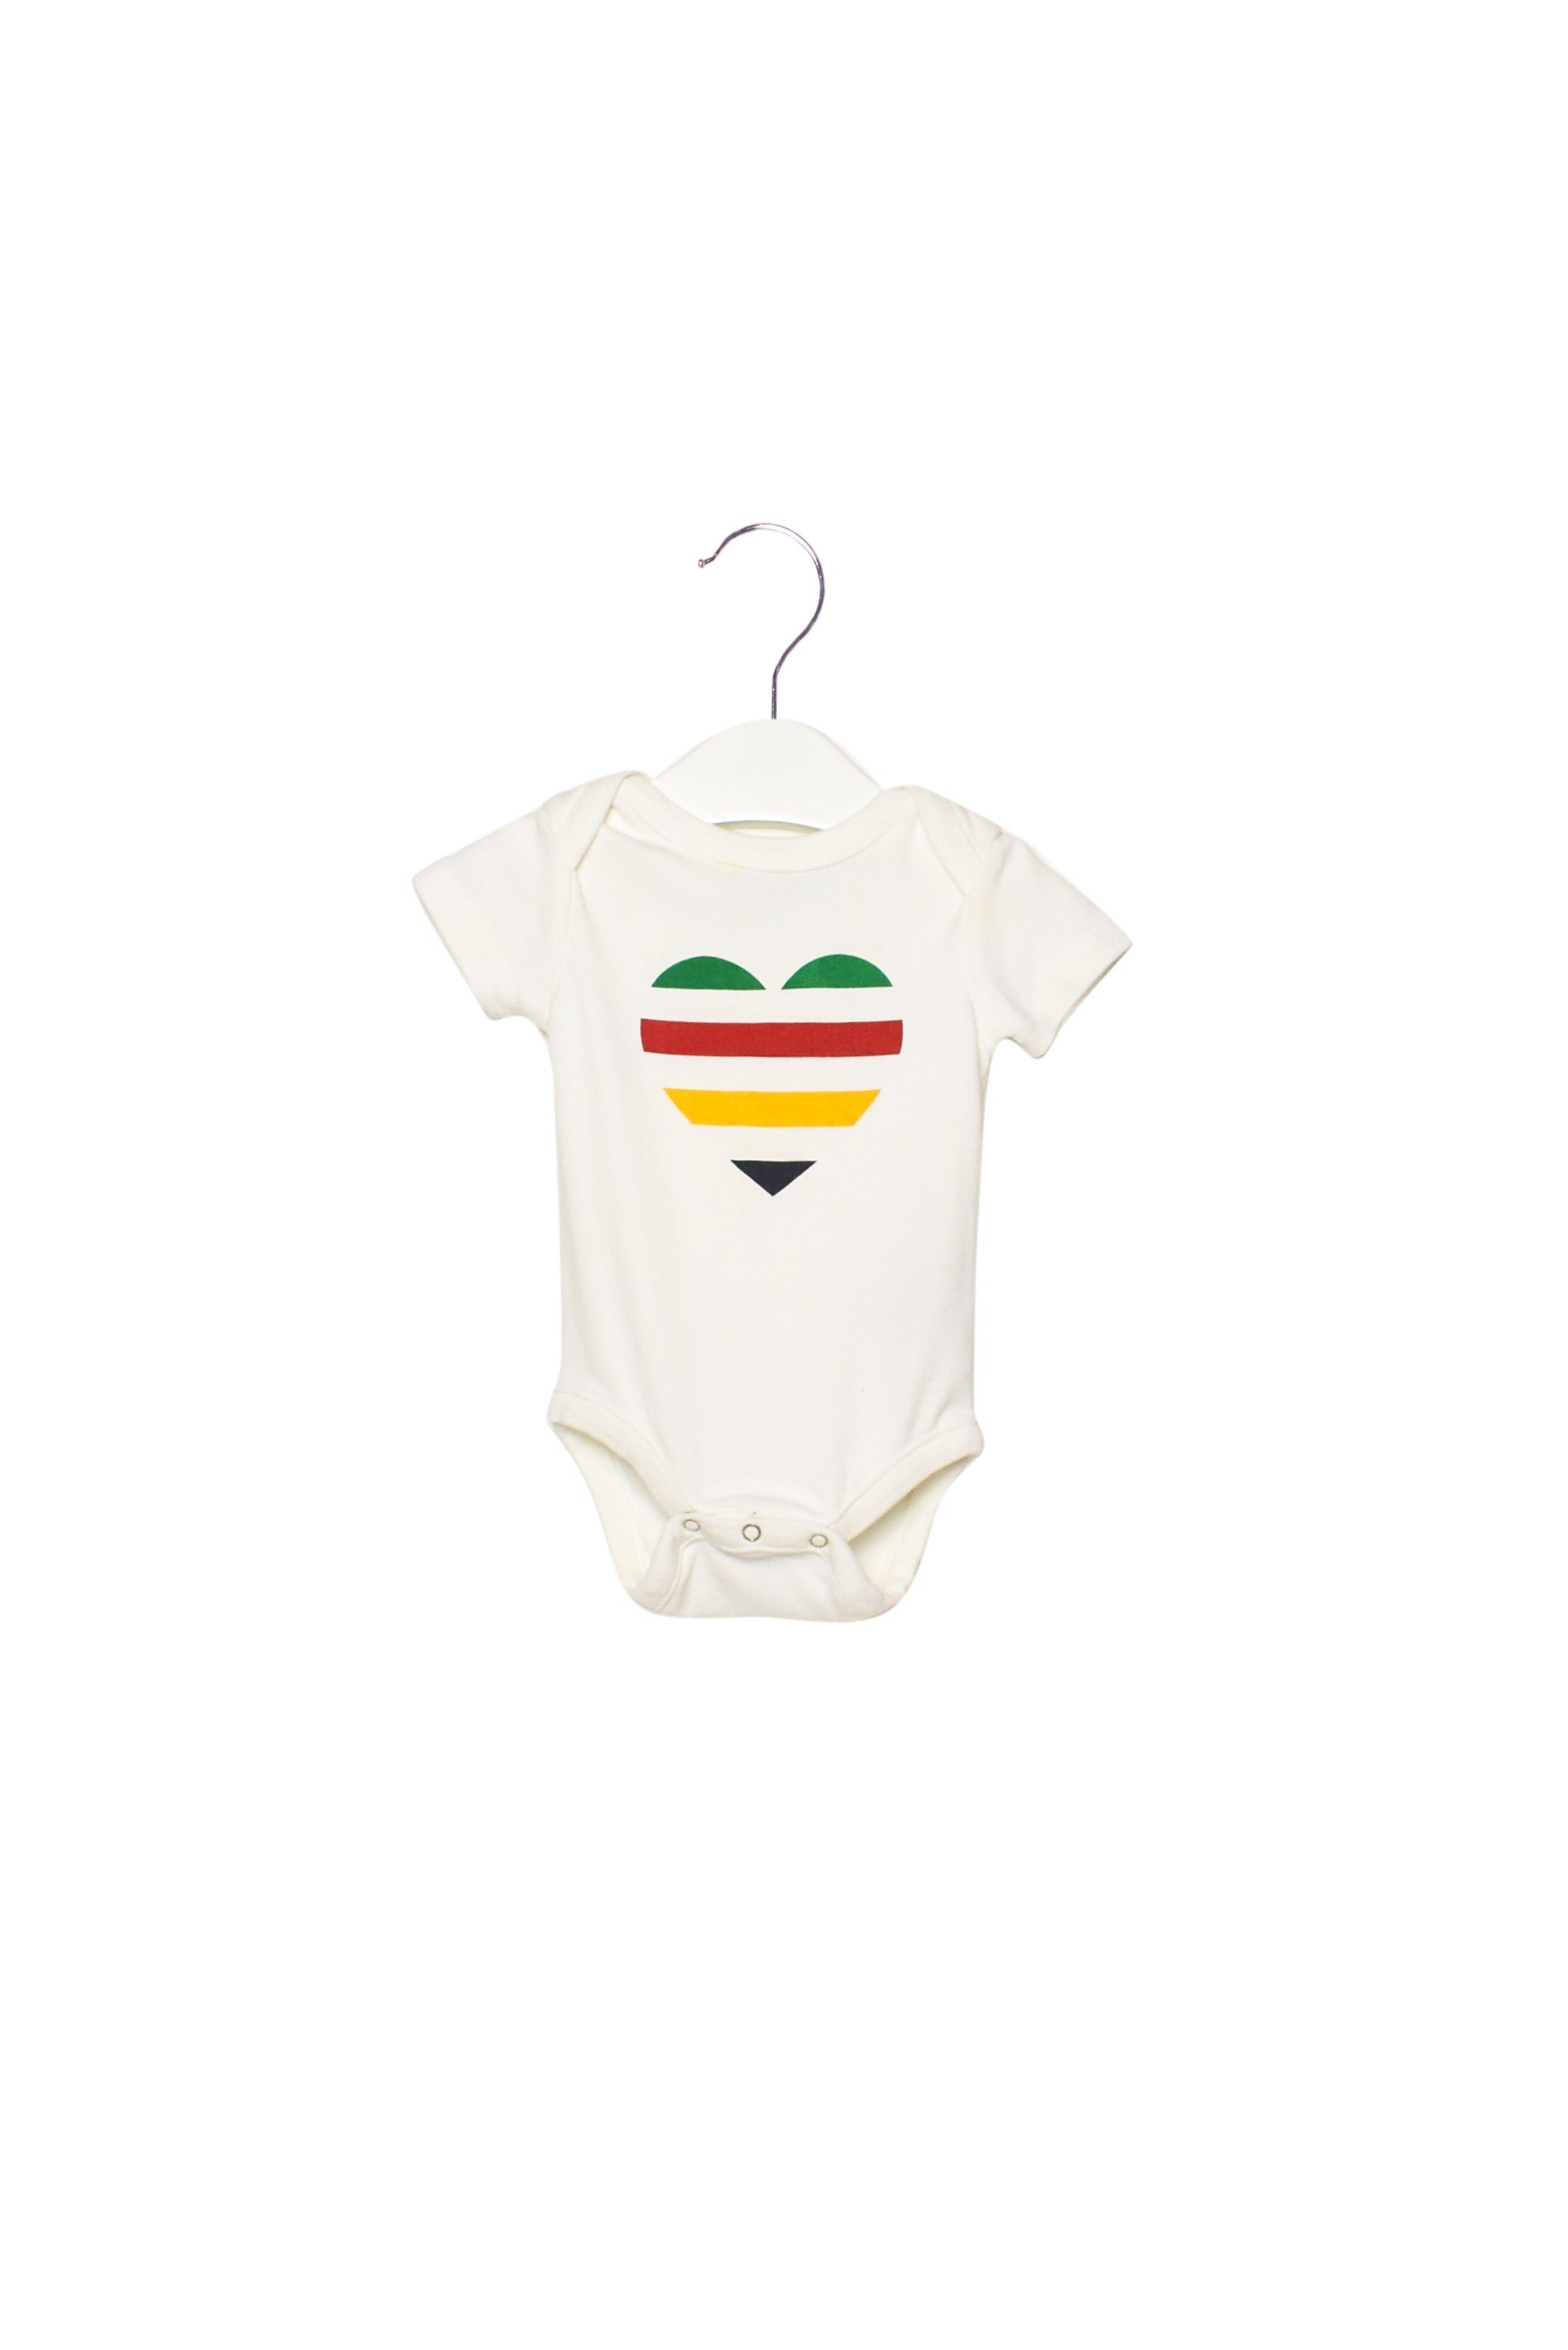 10011974 Hudson's Bay Co. Baby ~ Bodysuit 0-3M at Retykle